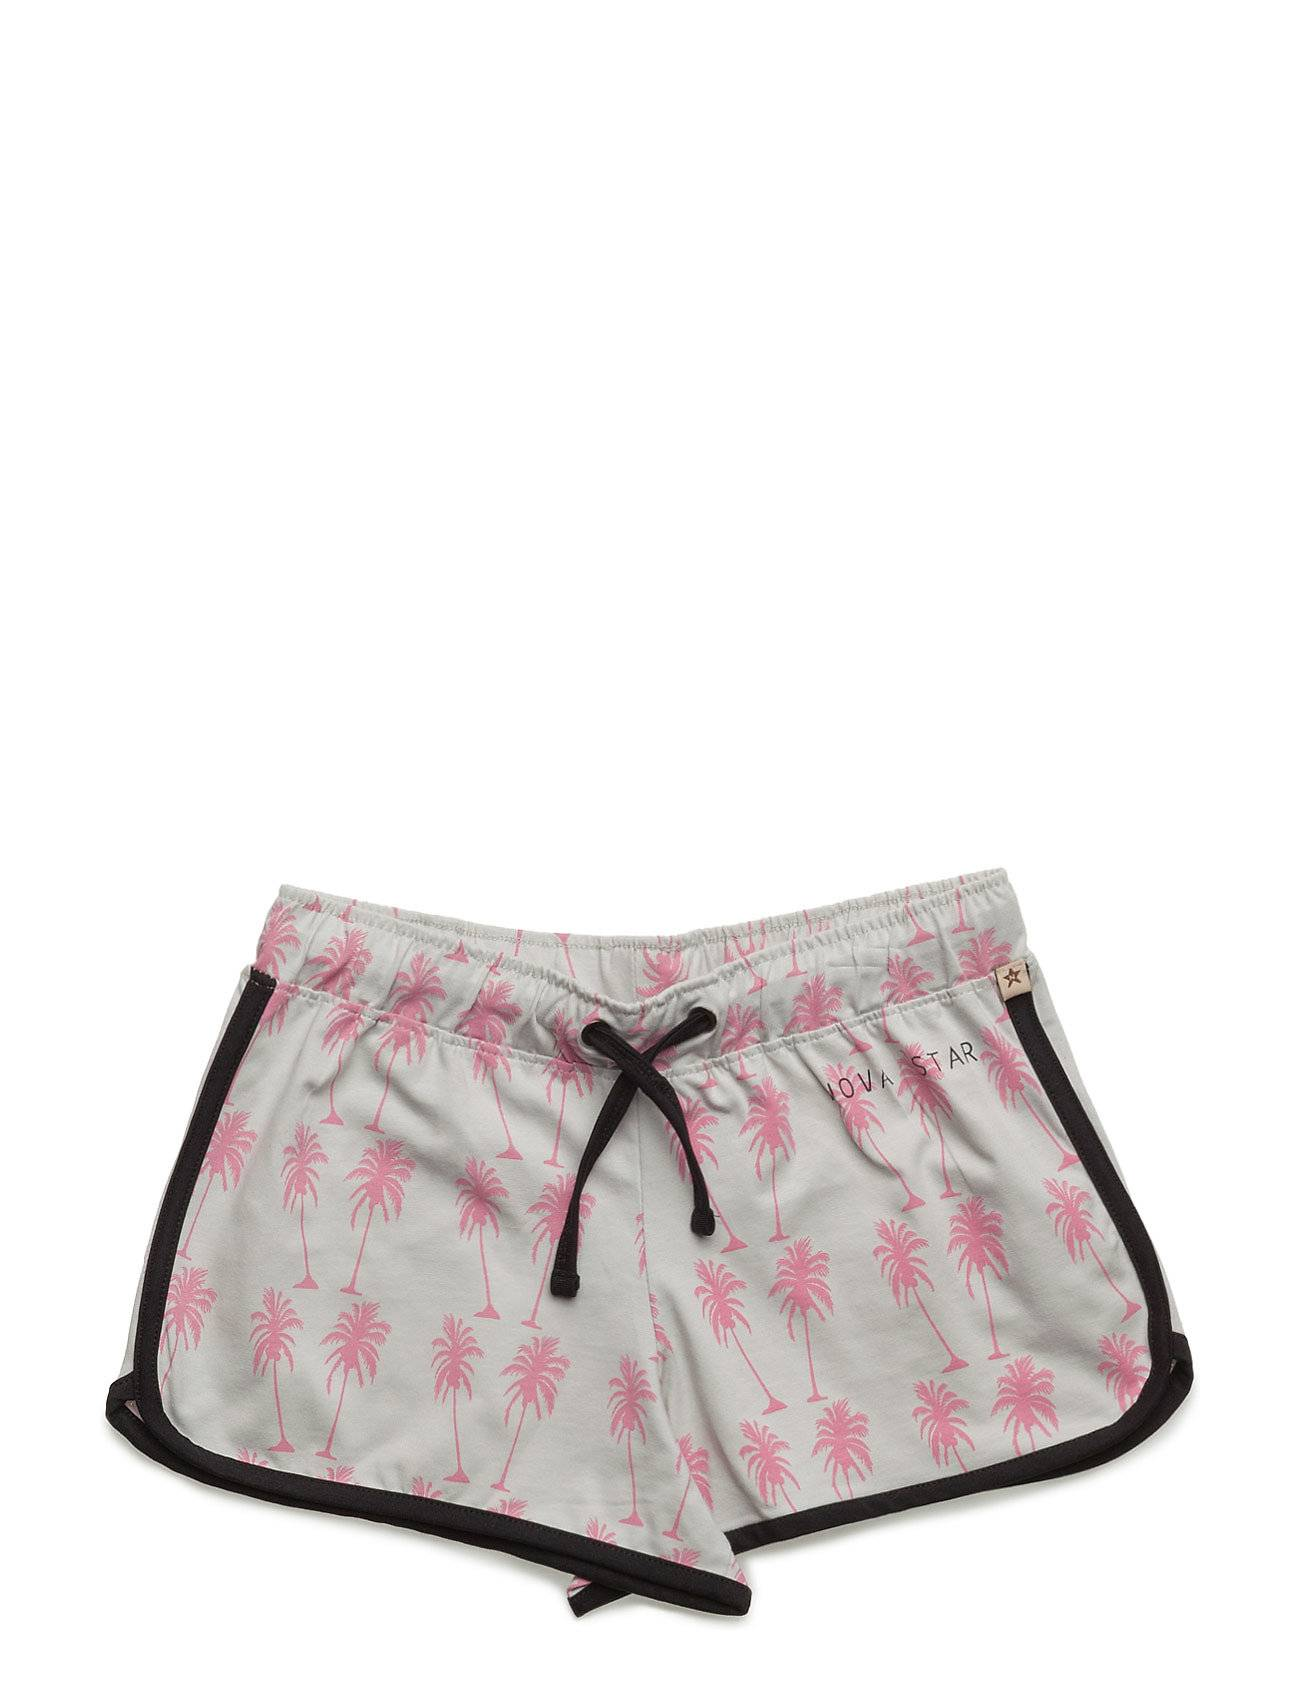 NOVA STAR Shorts Pink Palms